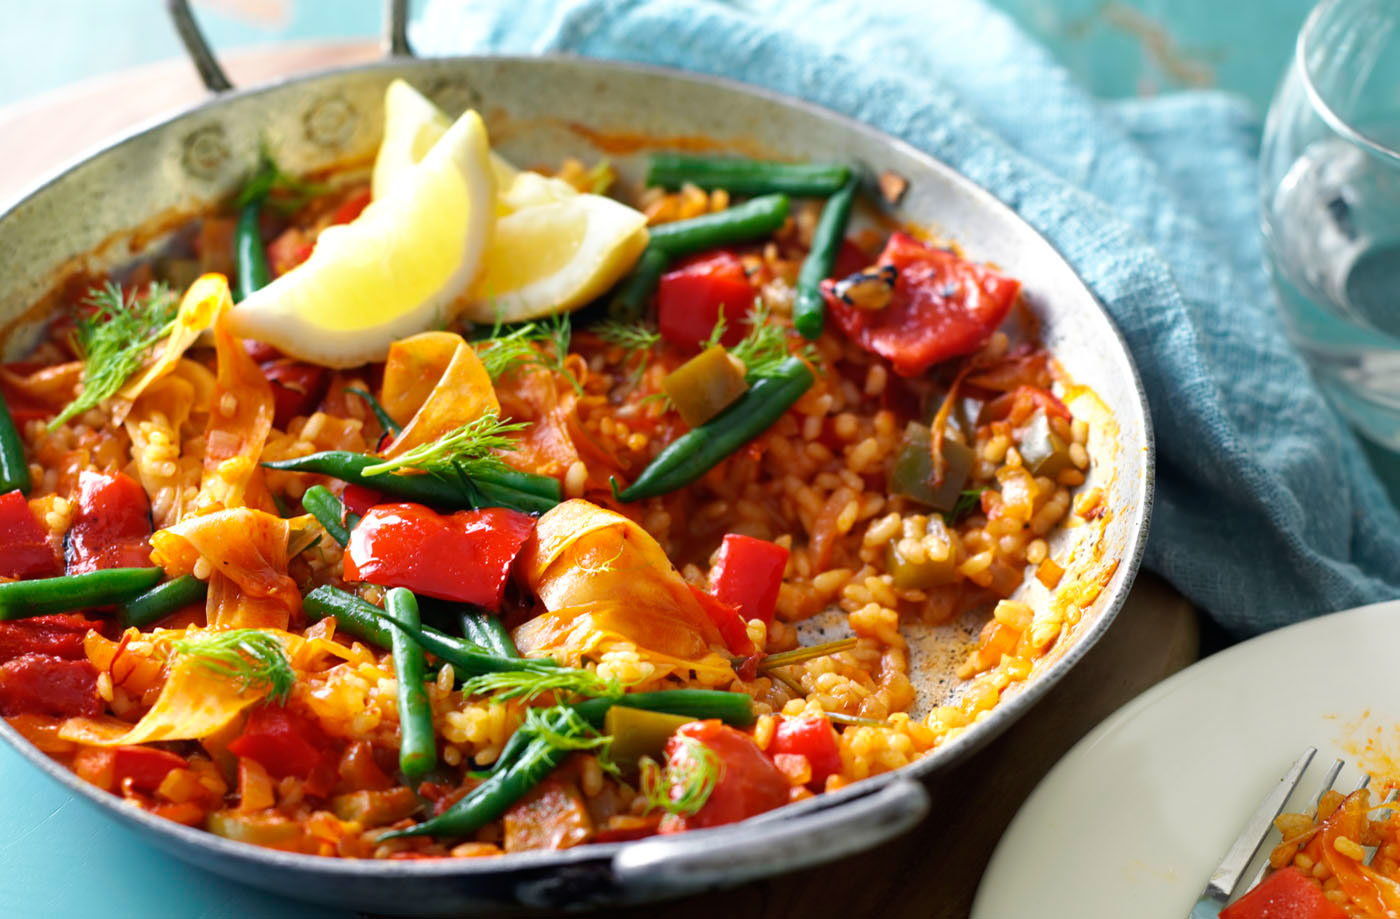 Fennel, tomato and red pepper paella recipe